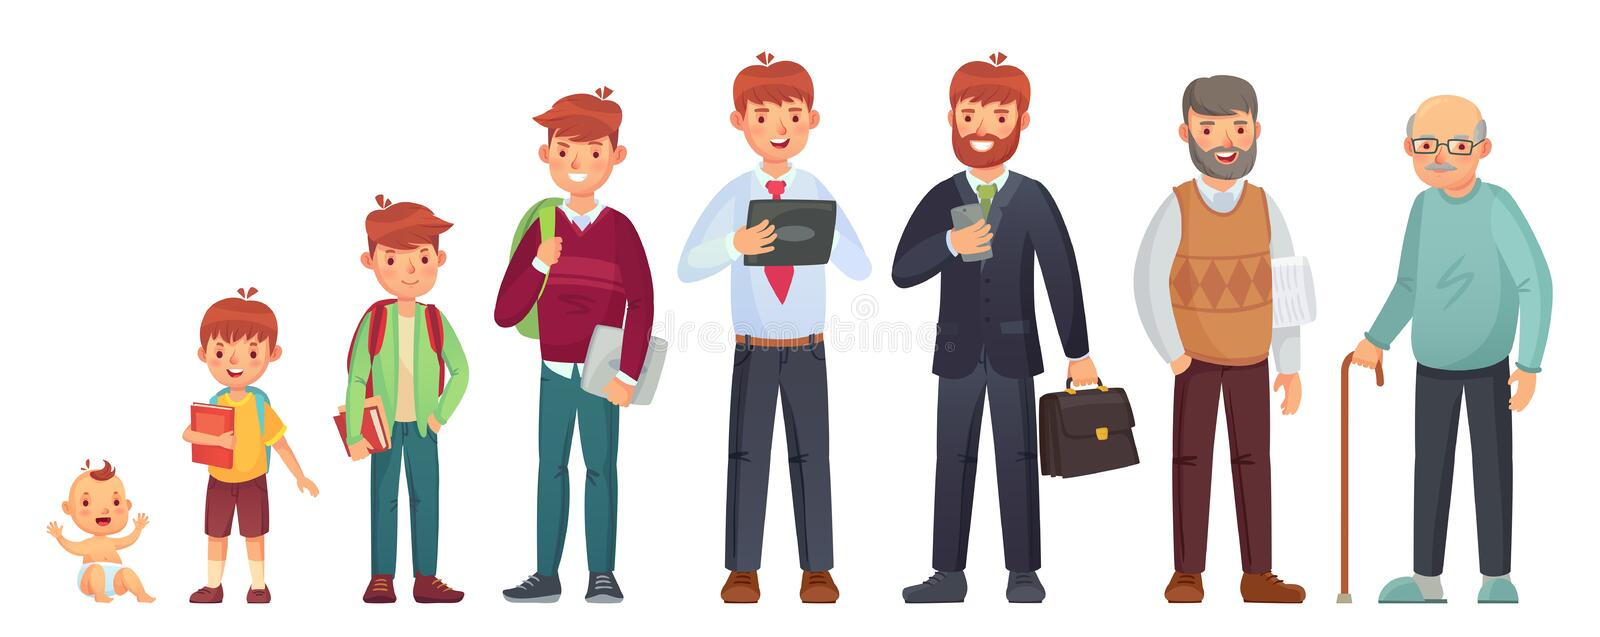 Male different age. Newborn baby, teenage boy and student ages, adult man and old senior. People generations vector vector illustration